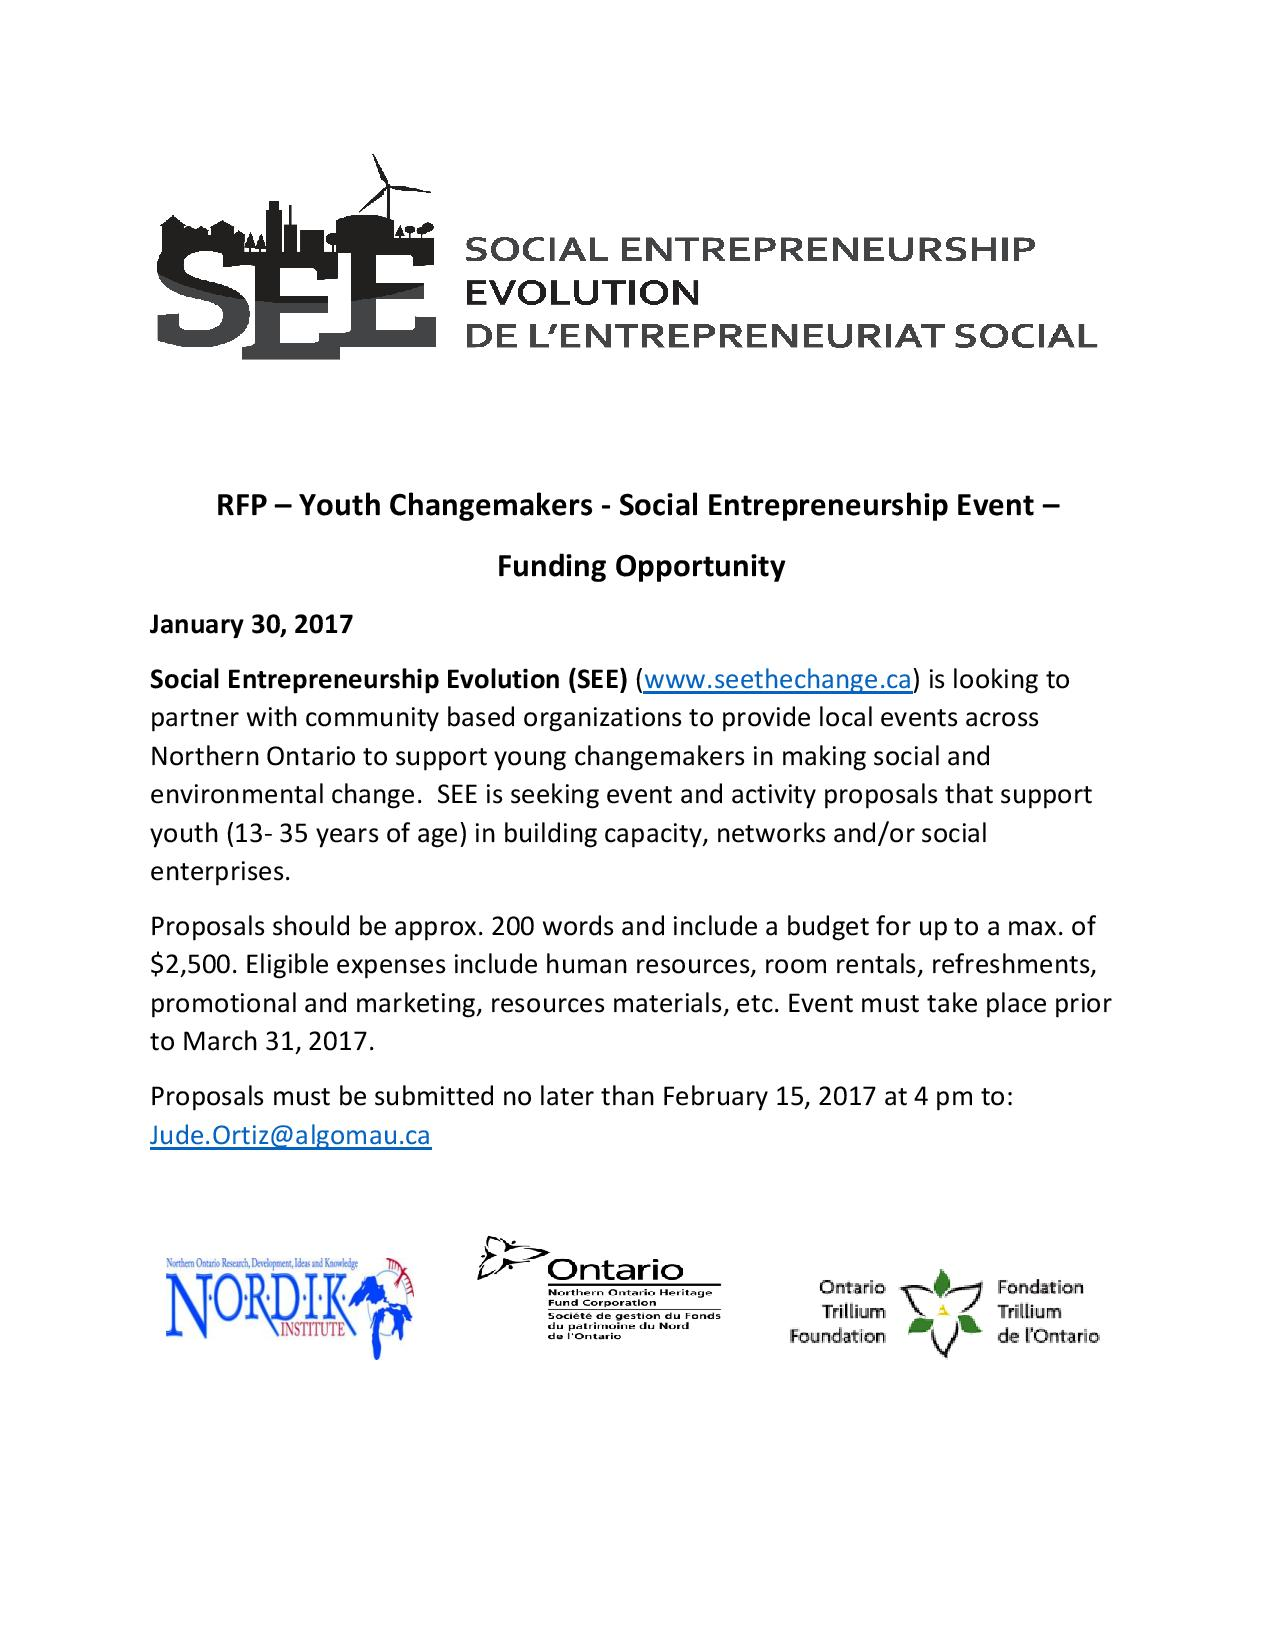 Funding_Youth_Changemaker_Events_RFP-page-001.jpg